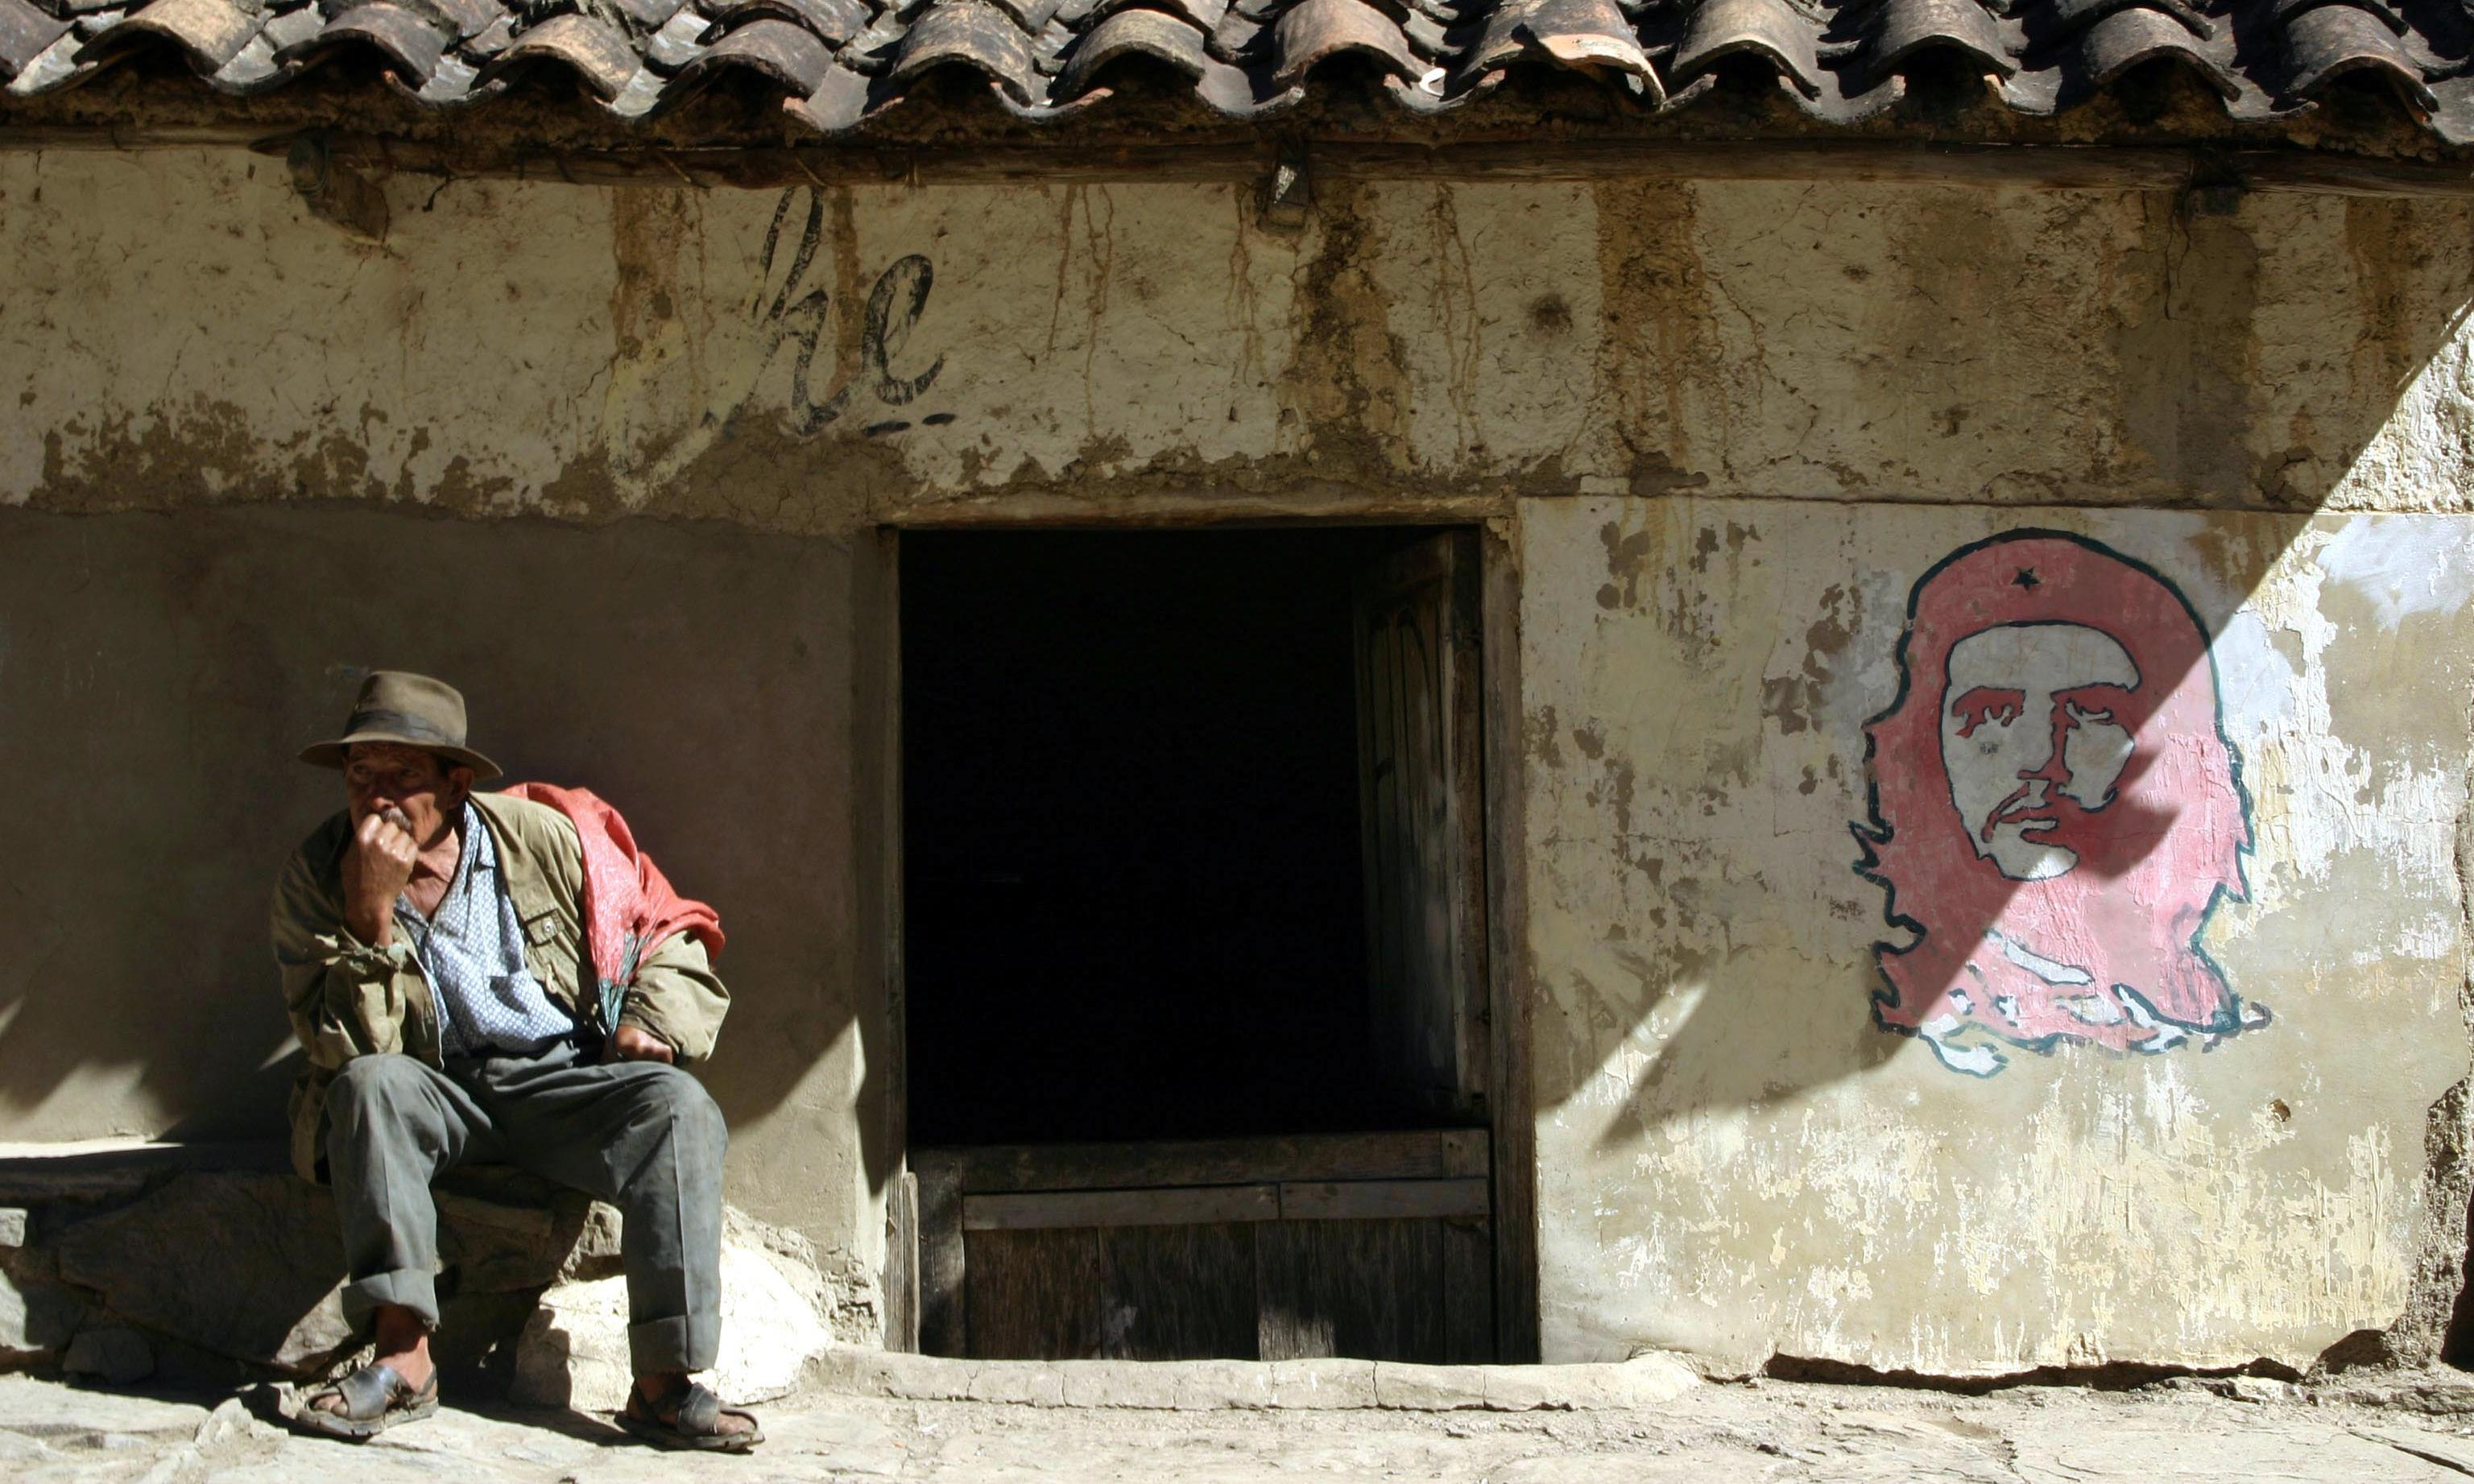 Revolutionary road: on the trail of Che Guevara's last days in Bolivia